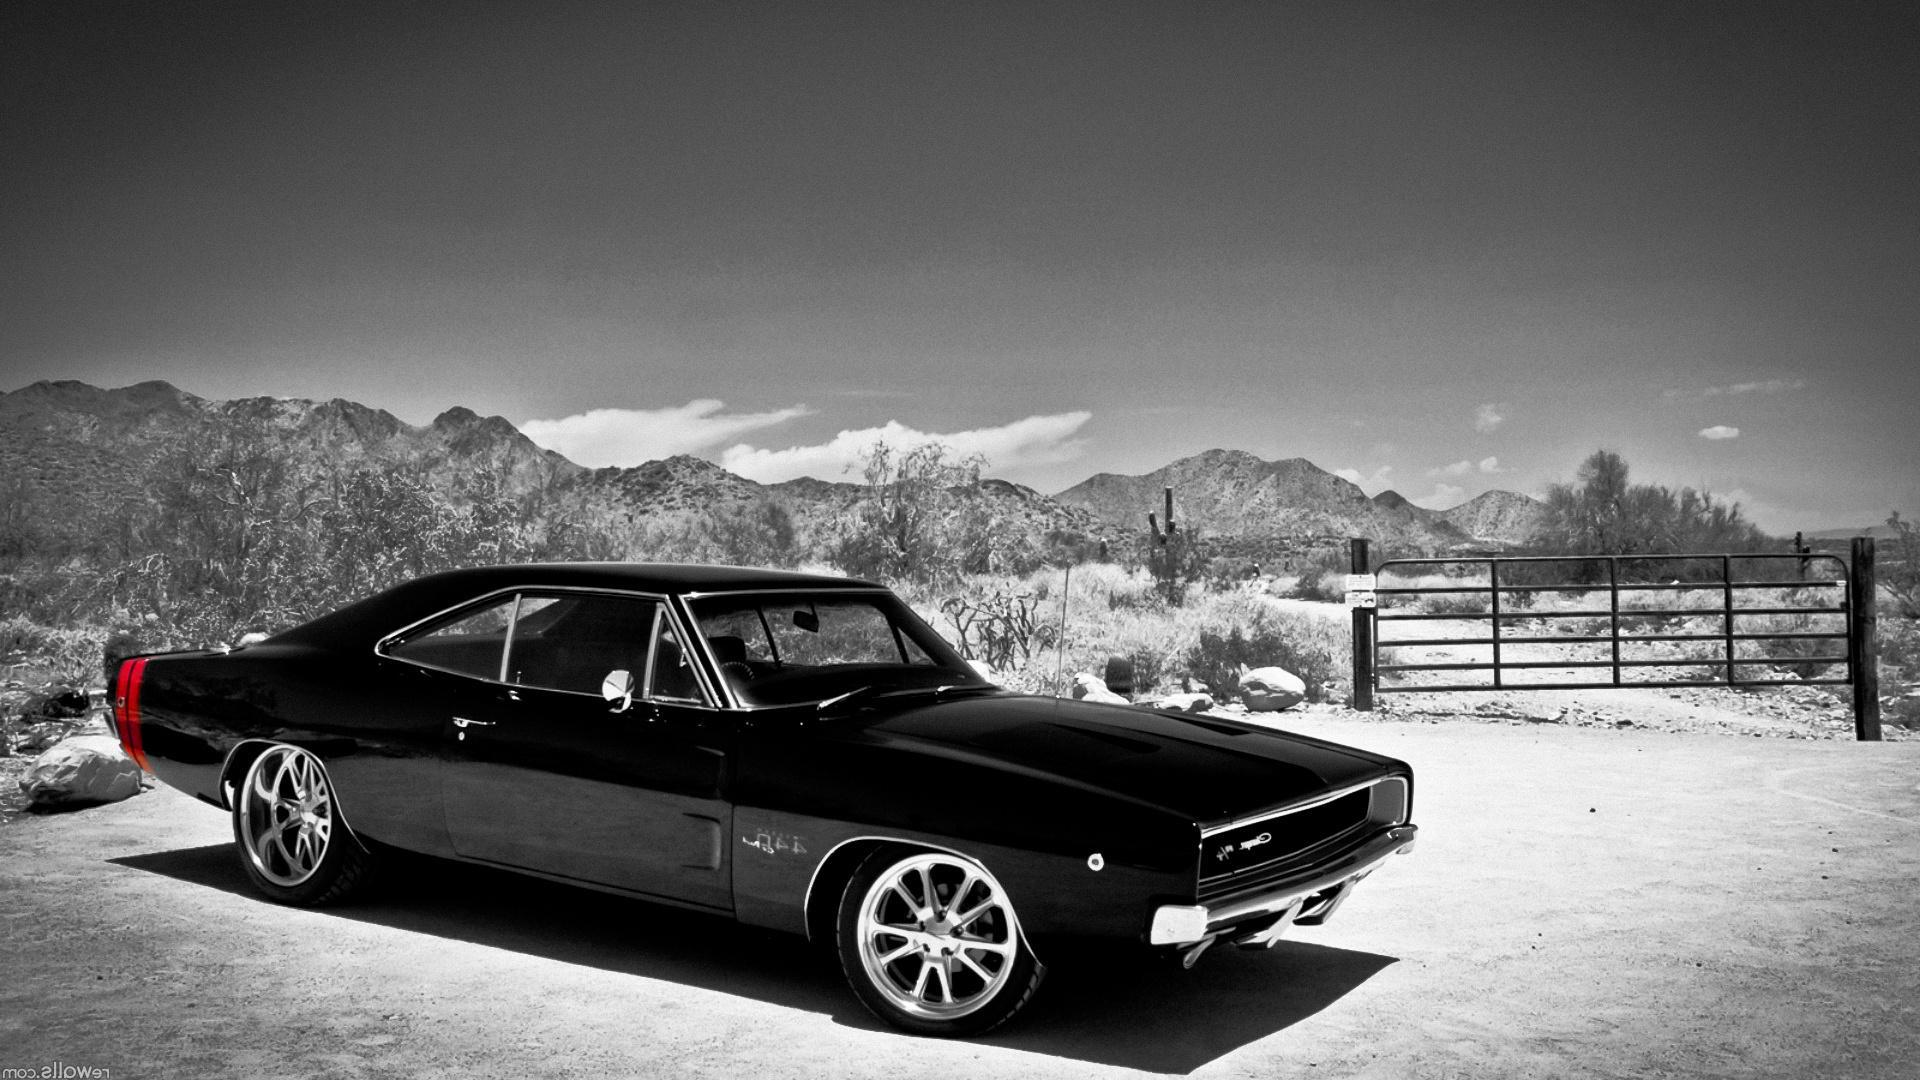 Dodge Charger Wallpapers - Top Free